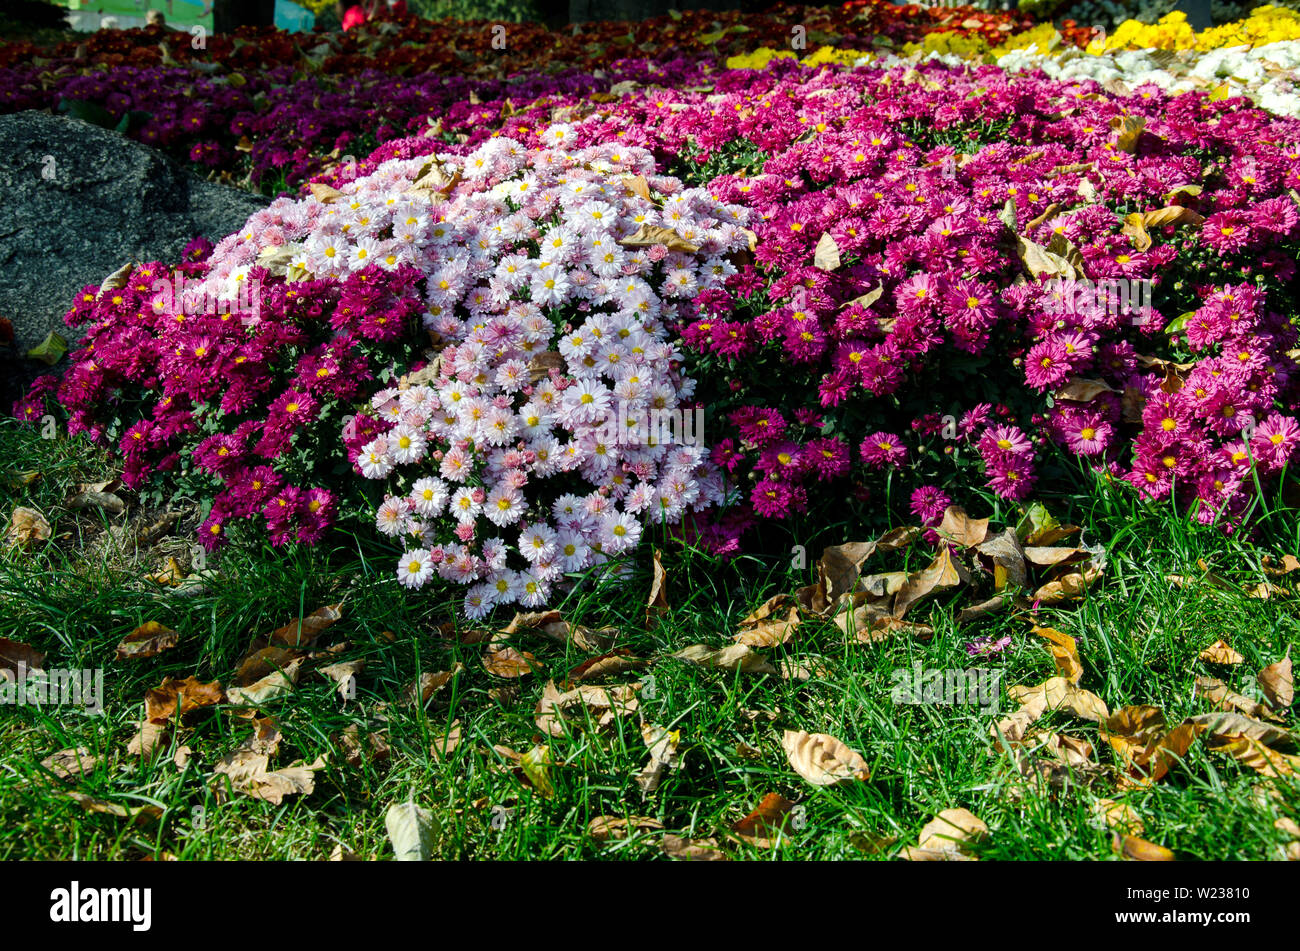 Flowerbed With Chrysanthemum Flowers Beautiful Composition In A